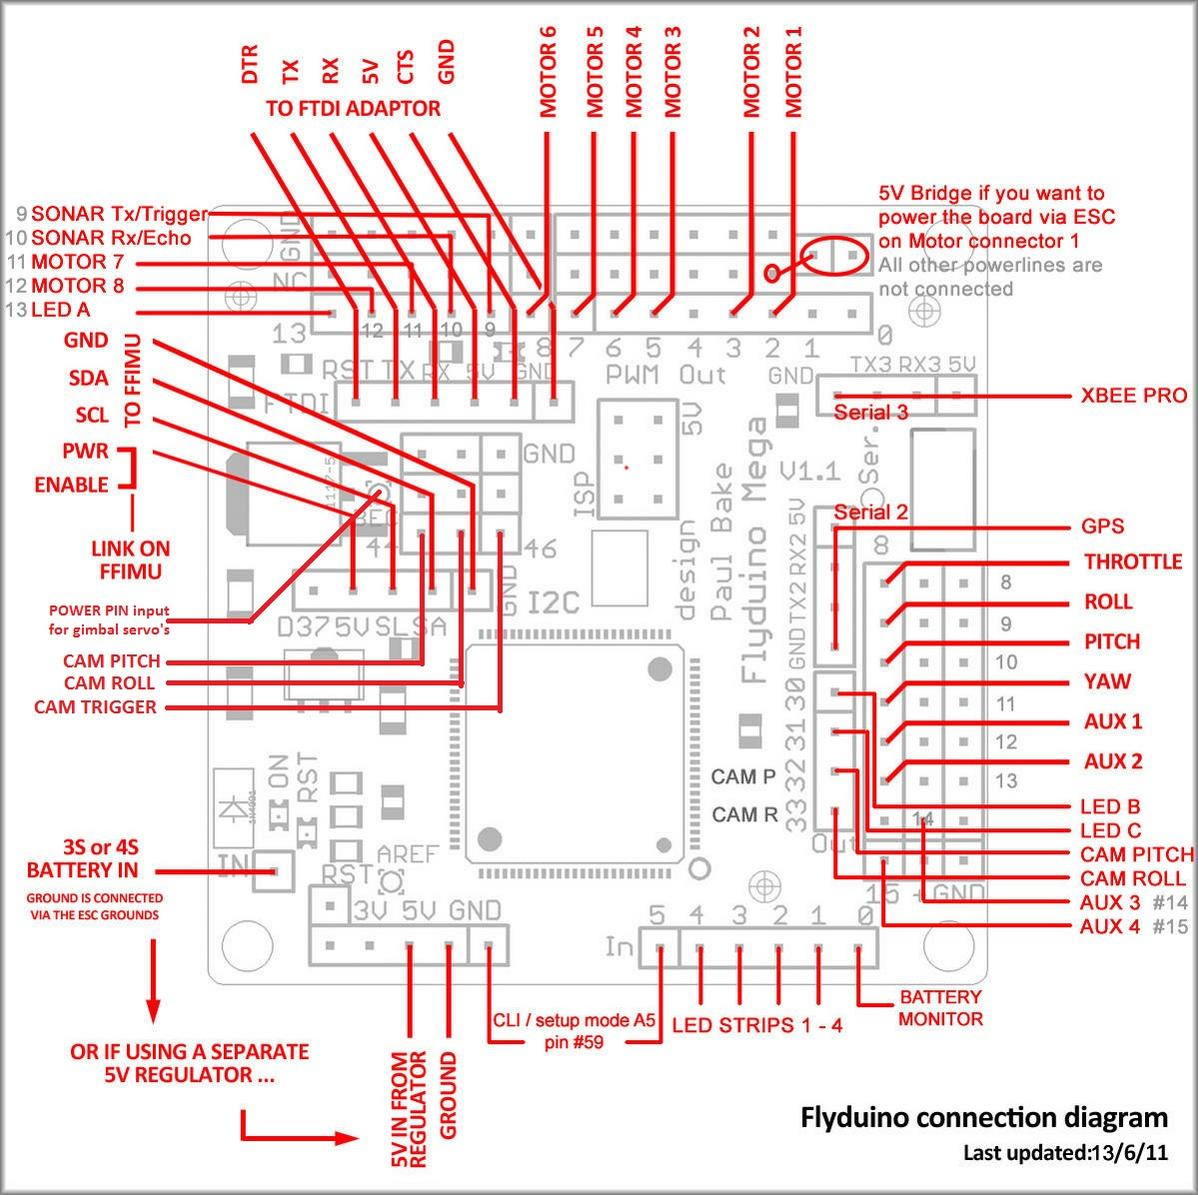 a4341830 143 final_flyduino_pinout_13 06 11 acm wiring diagram series and parallel circuits diagrams wiring ac wiring diagram at bayanpartner.co